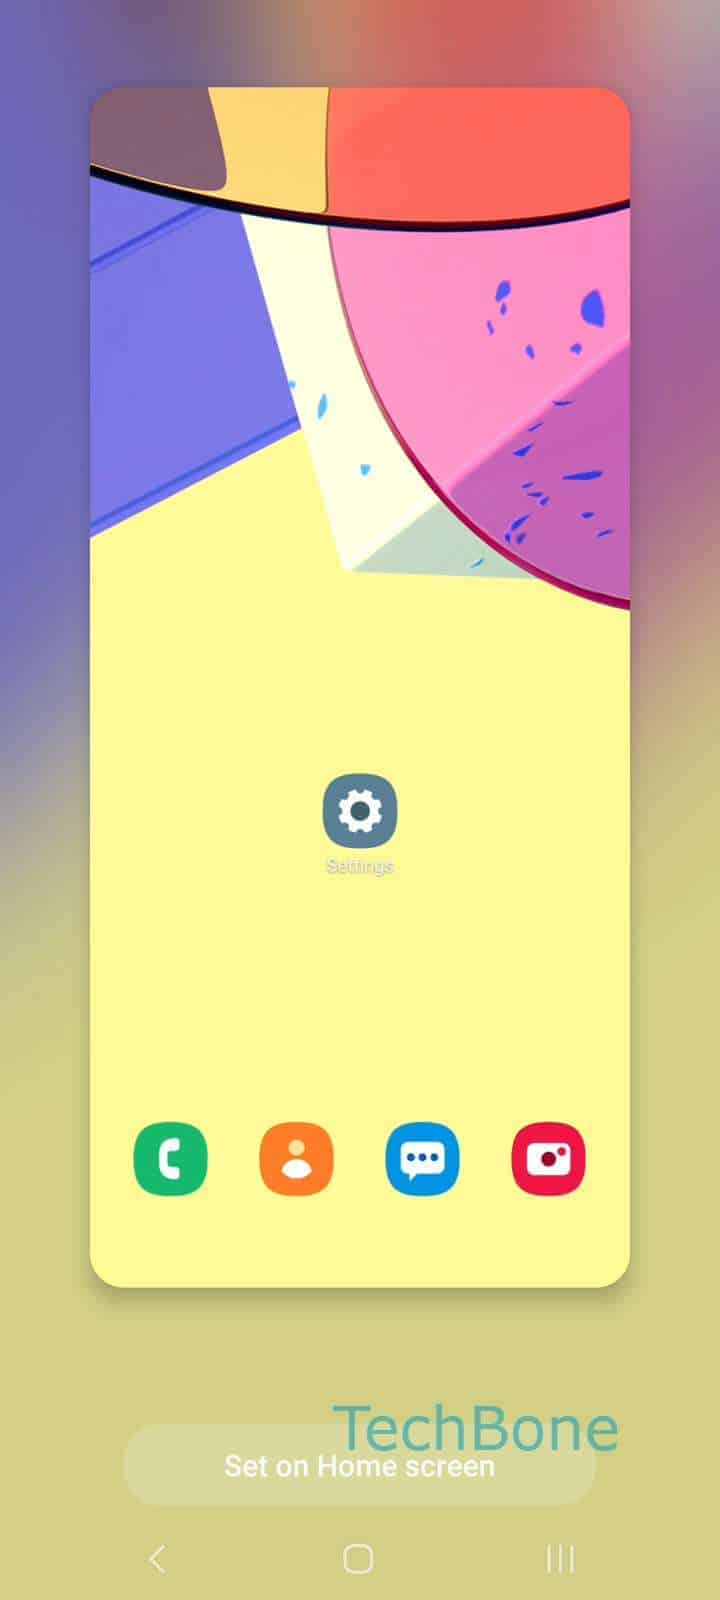 How to Change Wallpaper on Home Screen - Samsung Manual ...